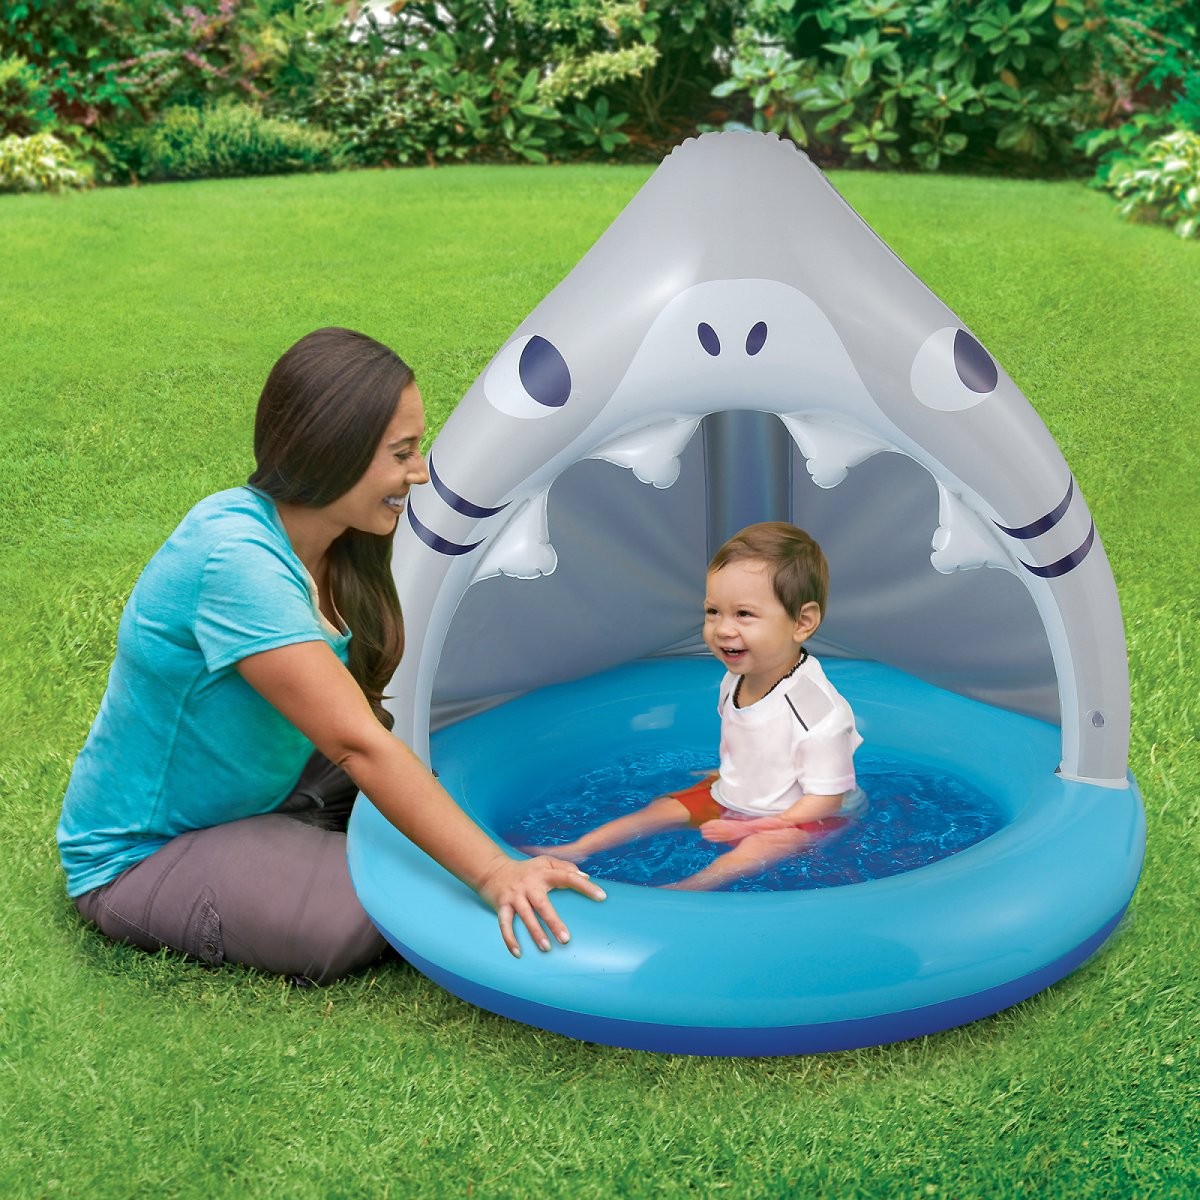 Summer Waves Round Inflatable Baby Shark Shade Pool